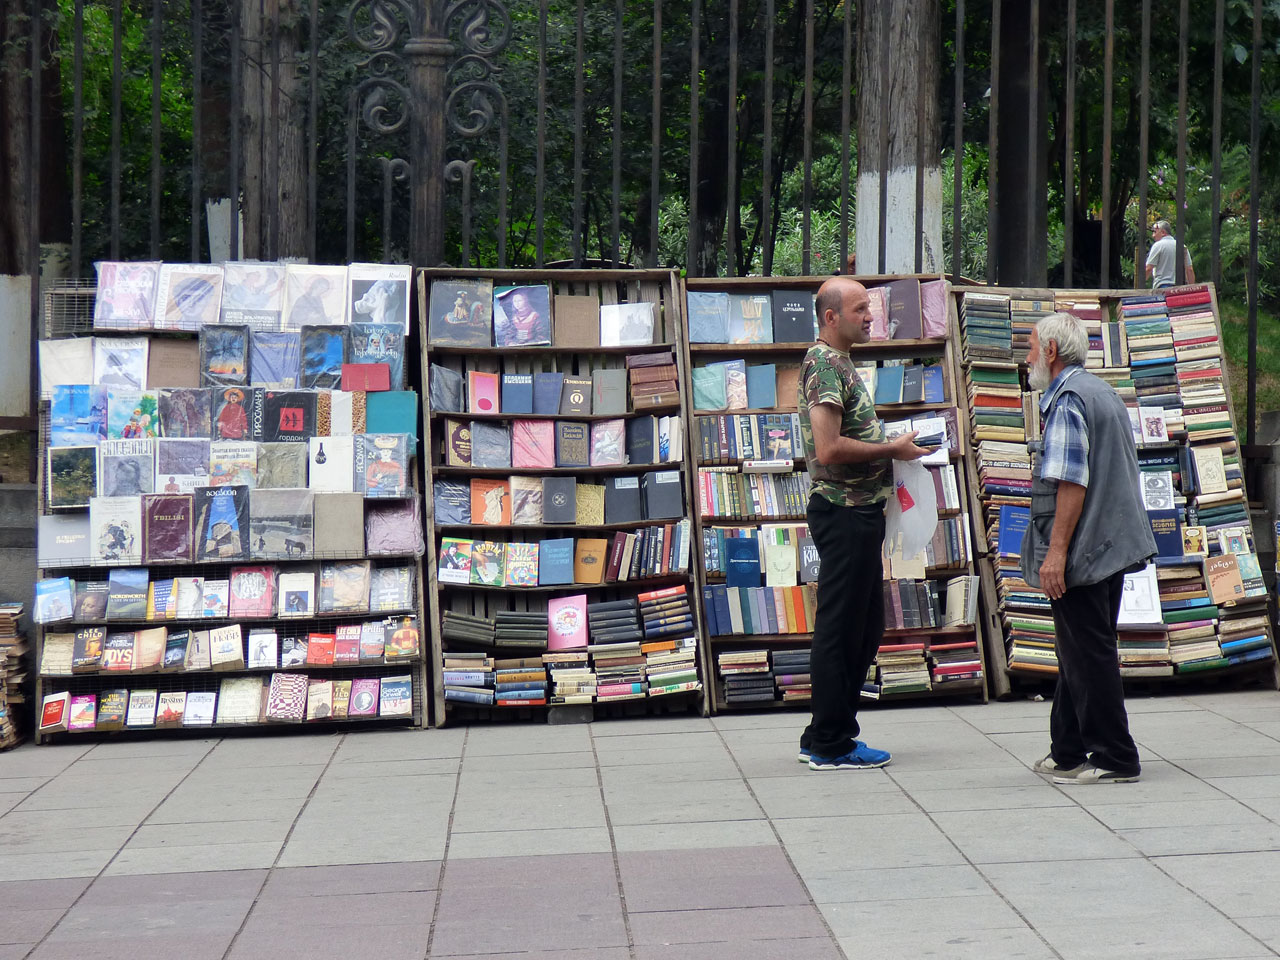 Book seller on Rustaveli Avenue, Tbilisi